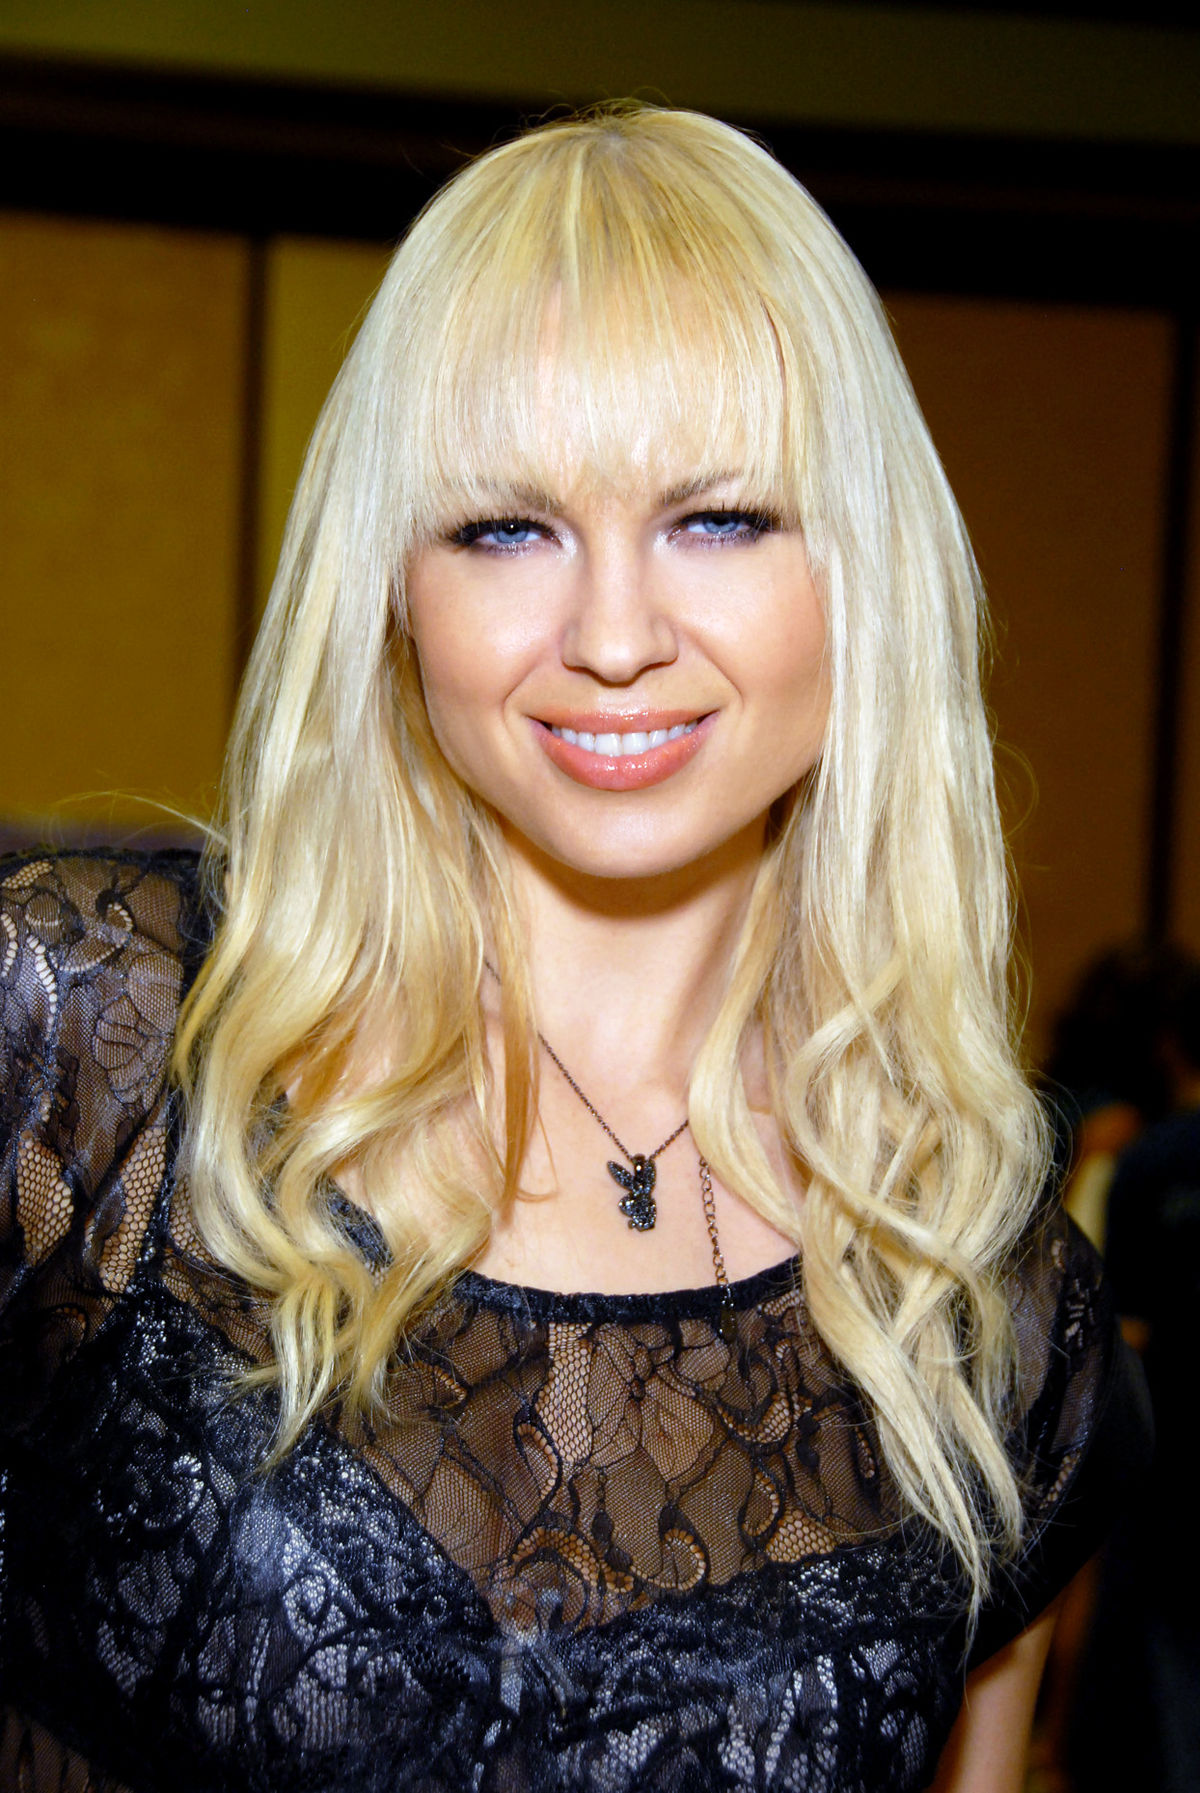 Image of irina voronina